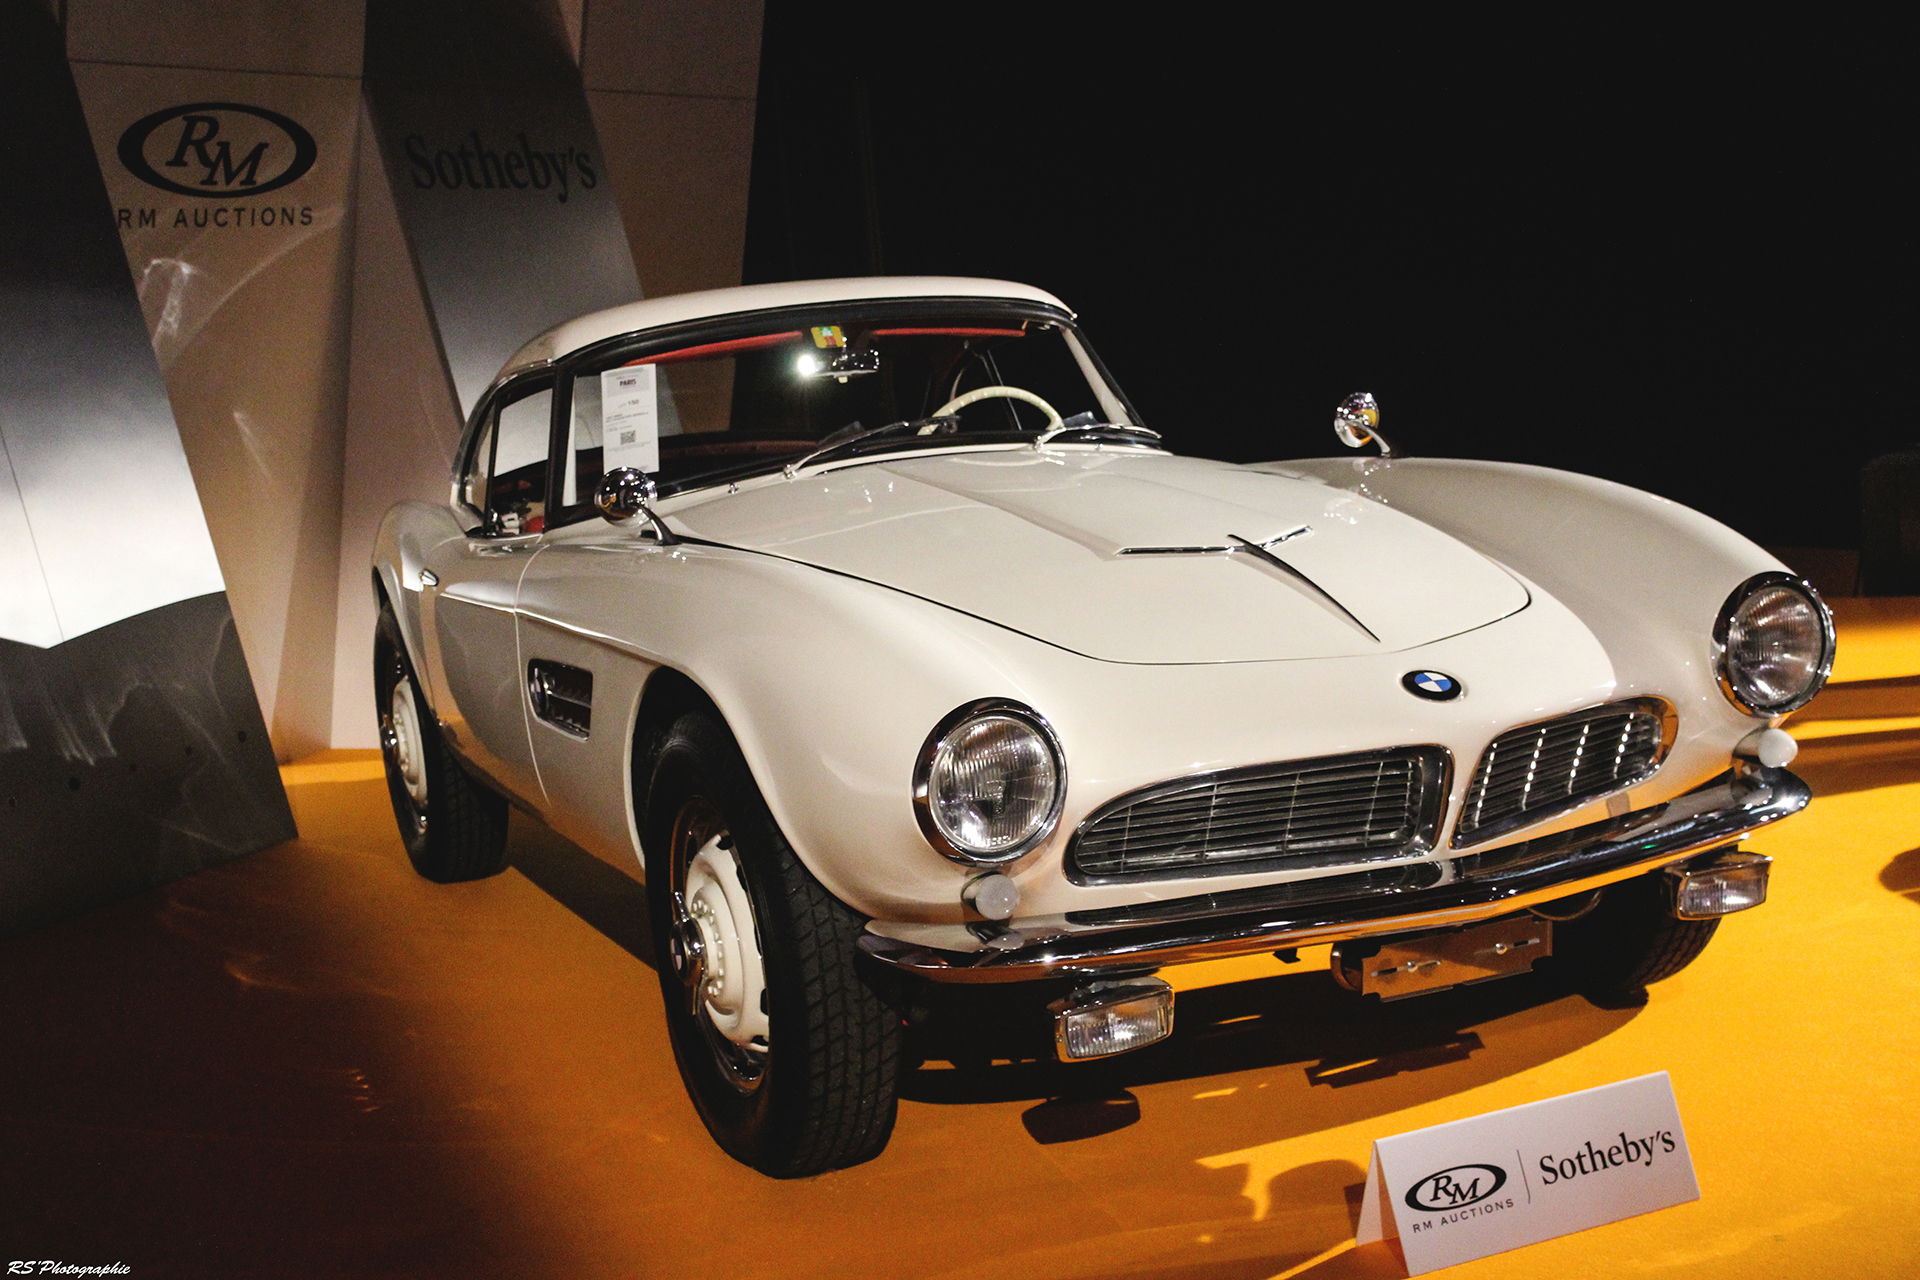 BMW 507 Roadster Series II - 1957 - RM - Auctions - 2016 - Arnaud Demasier RS Photographie